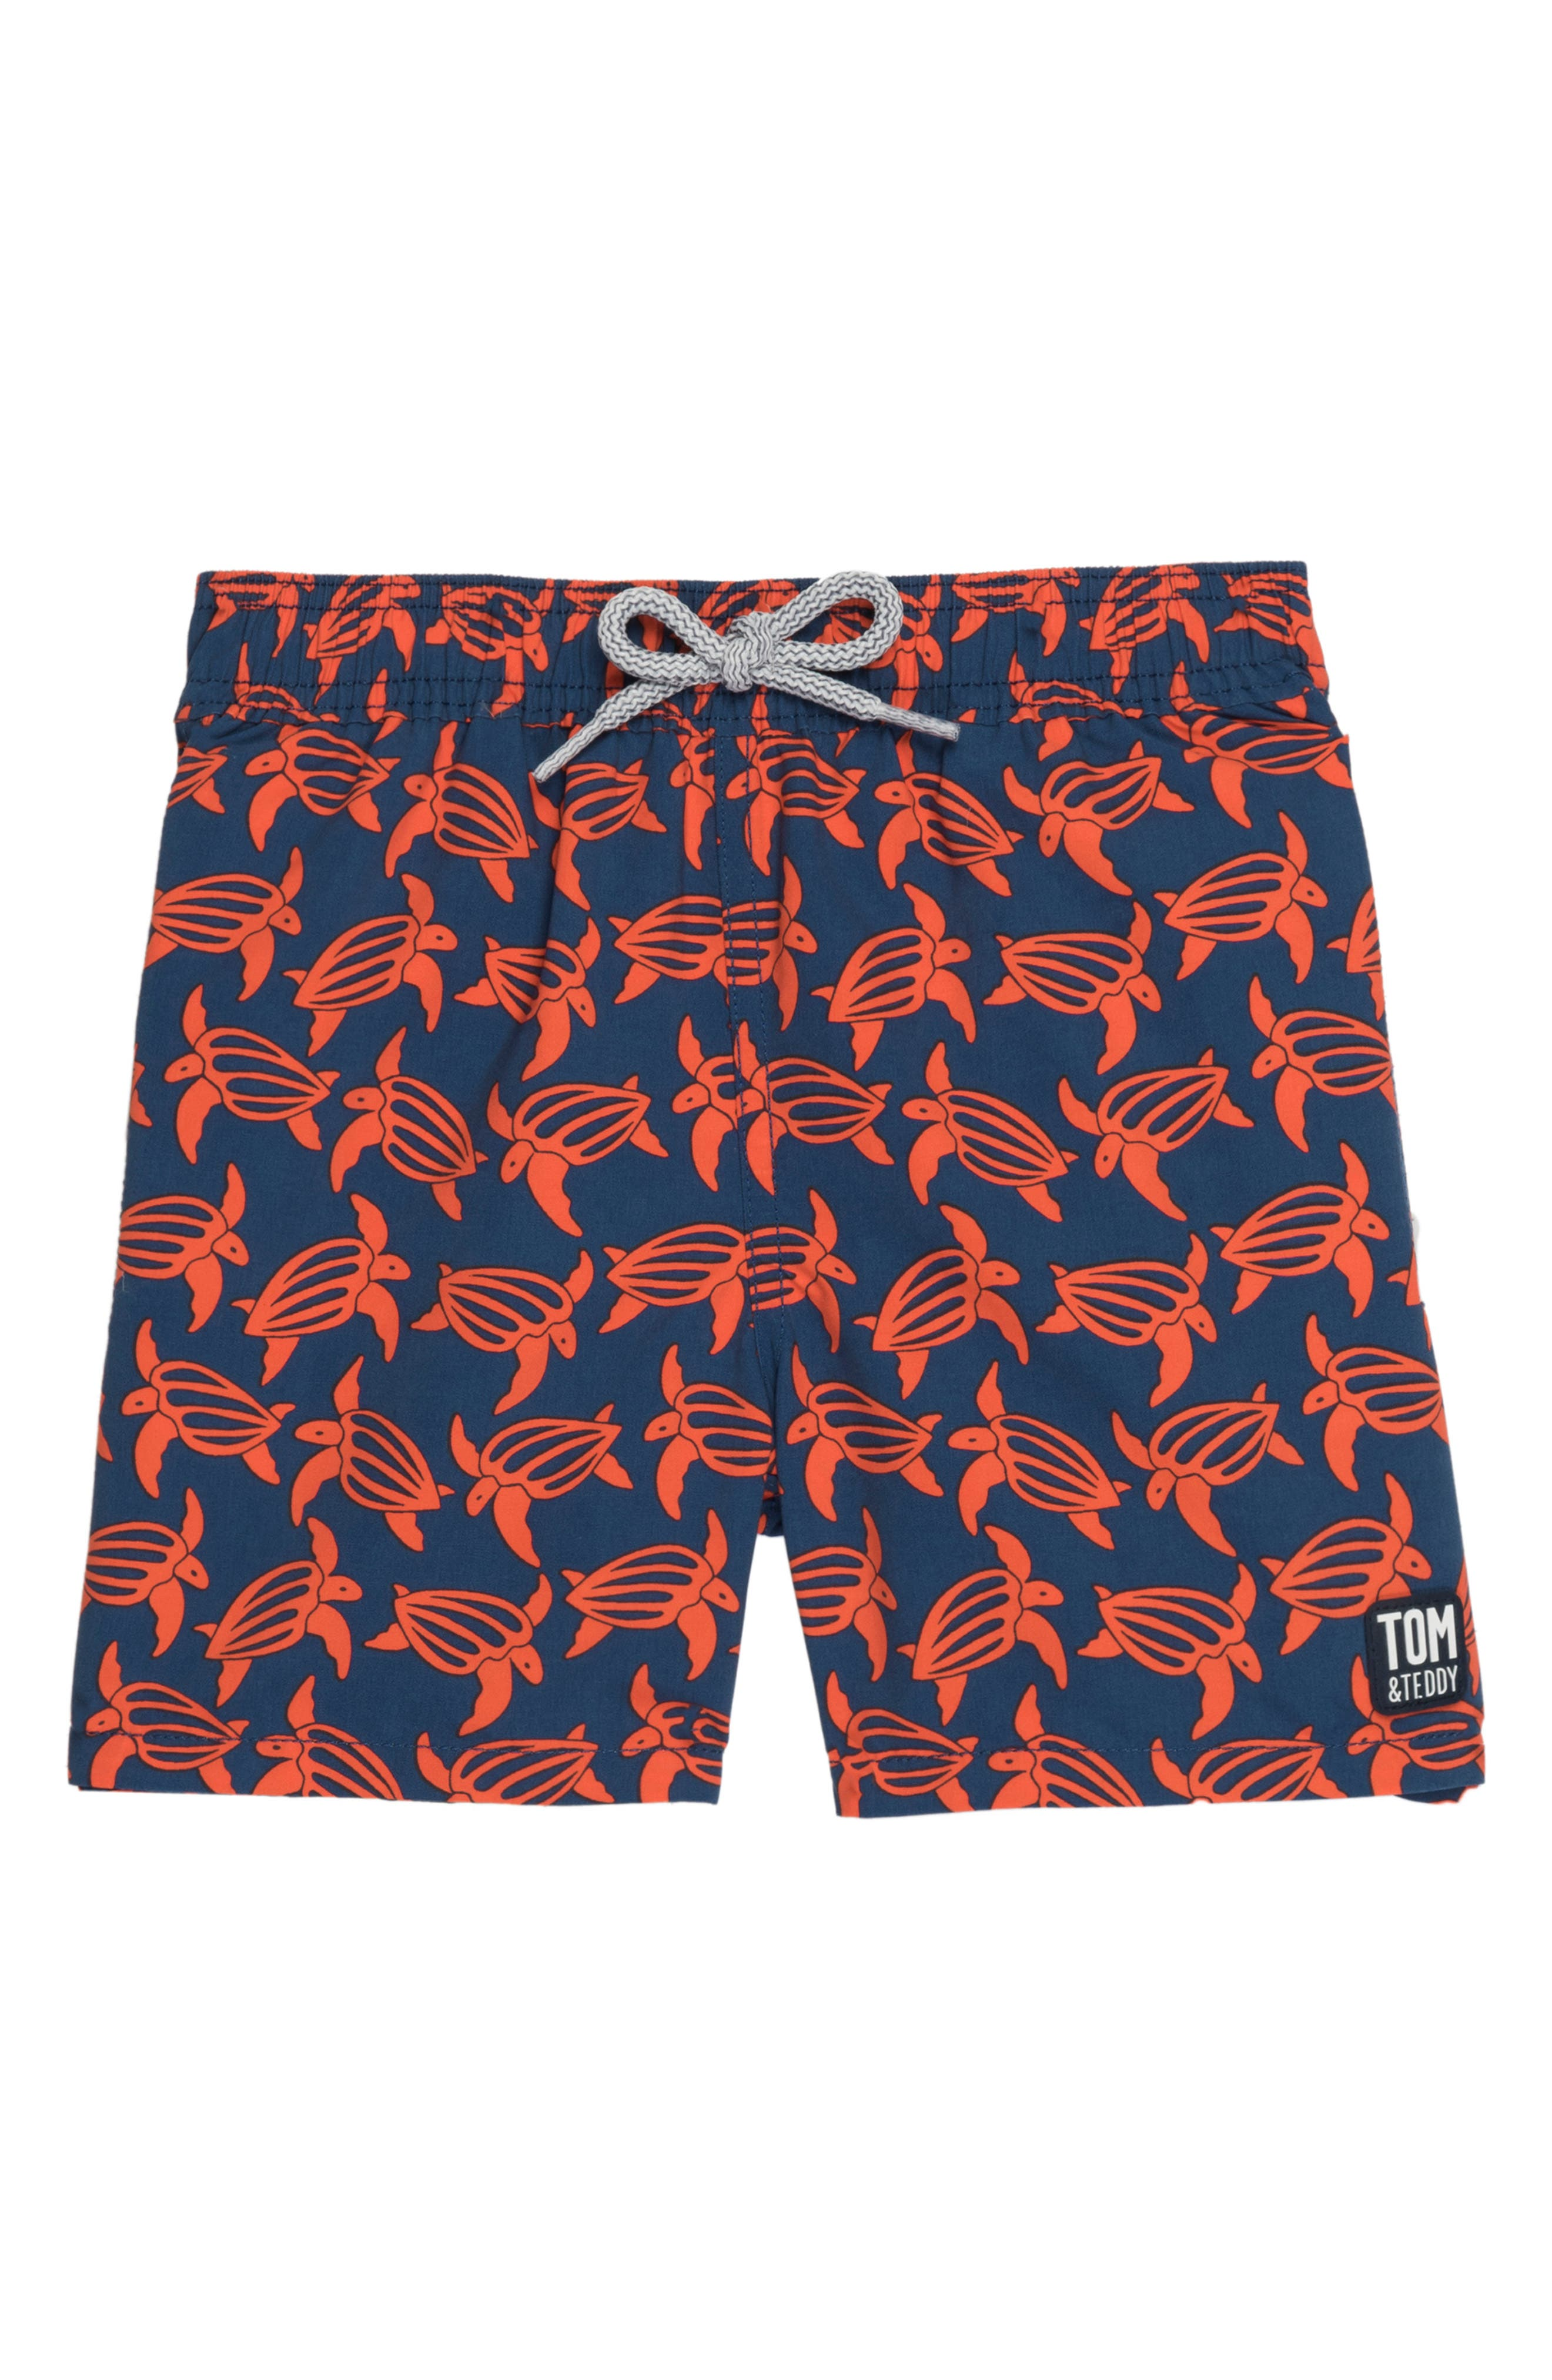 Turtle Swim Trunks,                             Main thumbnail 1, color,                             NAVY/ ORANGE